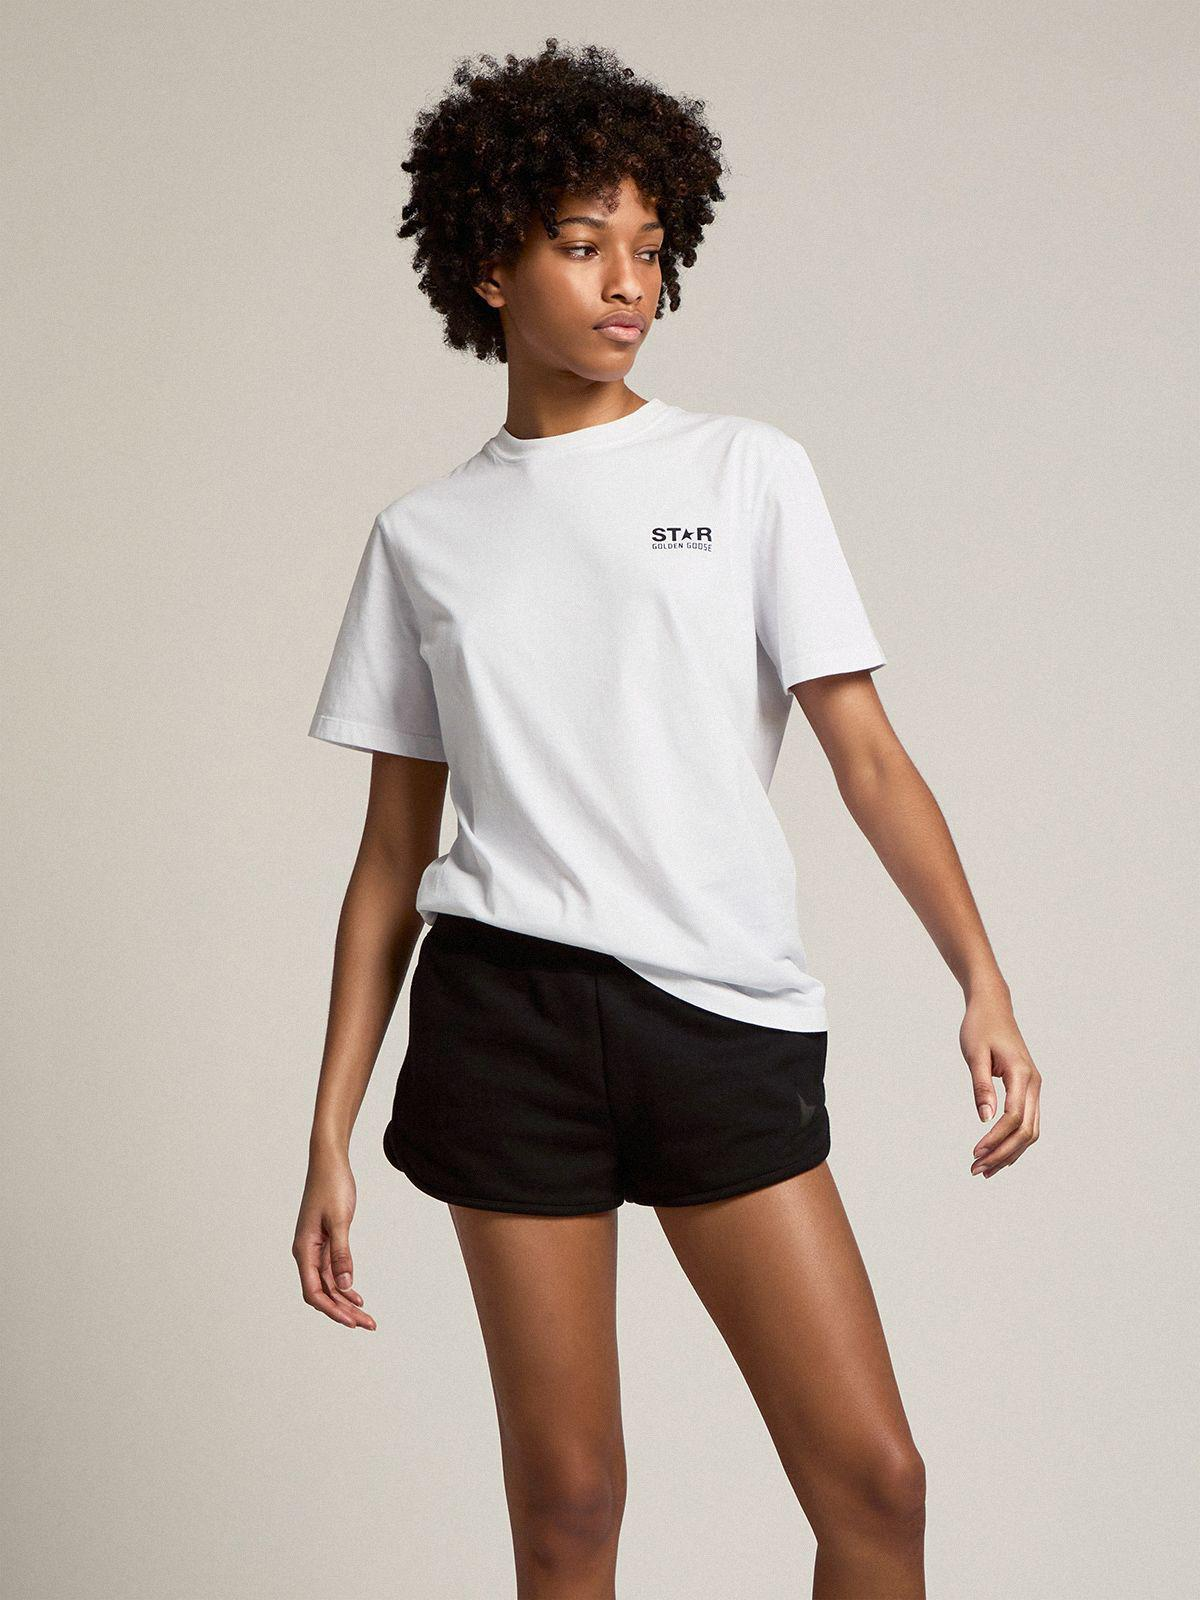 White Star Collection T-shirt with contrasting black logo and star 2